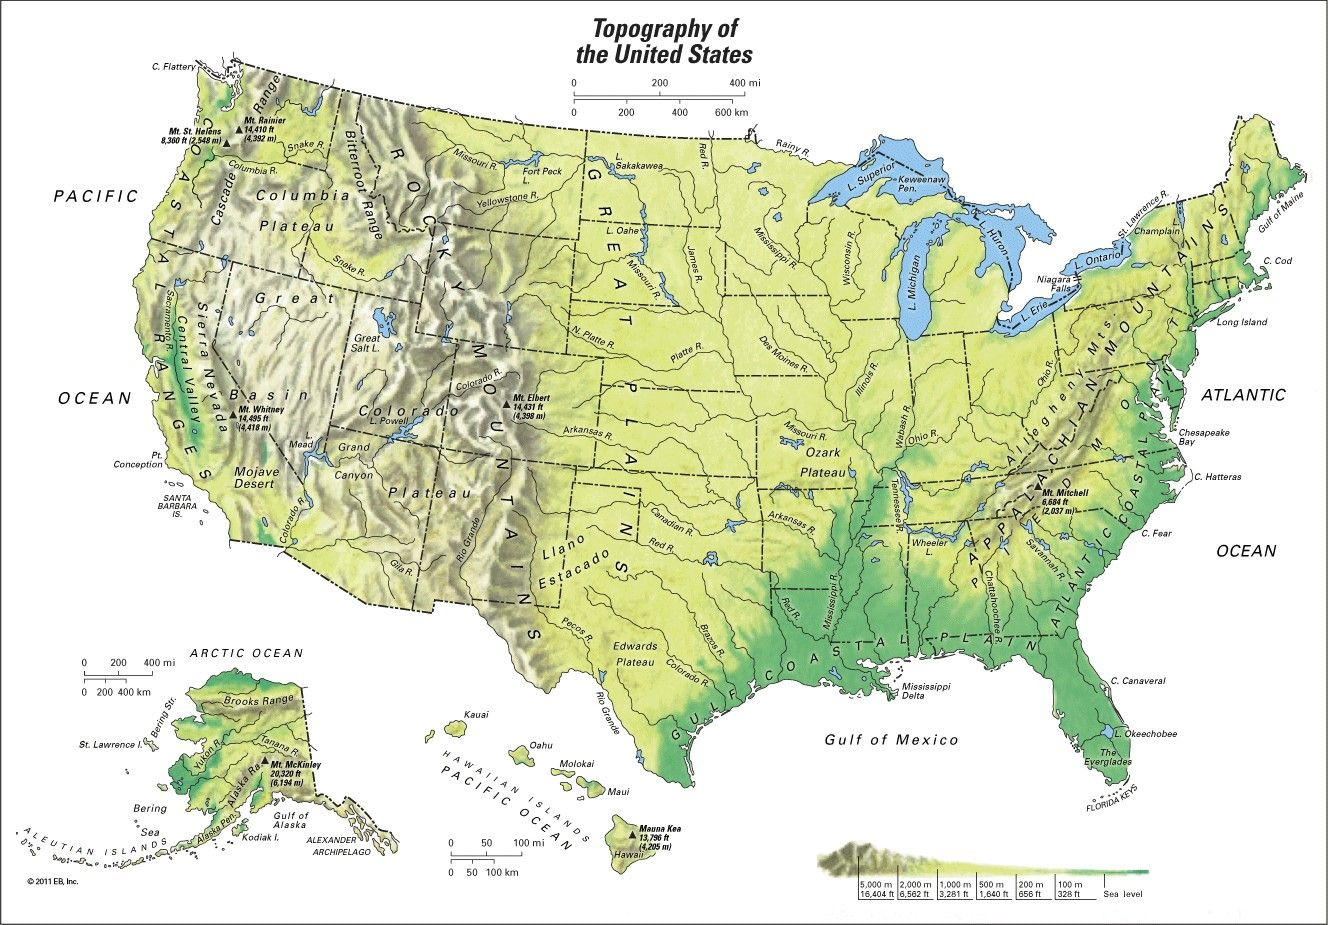 Us Geography Mountain Ranges Us Map Viking Globe Best ... on labeled map of the united states, topographic map eastern united states, land map of the united states, nautical map of the united states, agricultural map of the united states, wetland location map in united states, scale drawing of the united states, soil map of the united states, historic map of the united states, road map of the united states, climate map of united states, outline map of the united states, thematic map of the united states, military map of the united states, geologic map of the united states, linguistic map of the united states, tree map of the united states, relief map of united states, map of the western united states, map map of the united states,